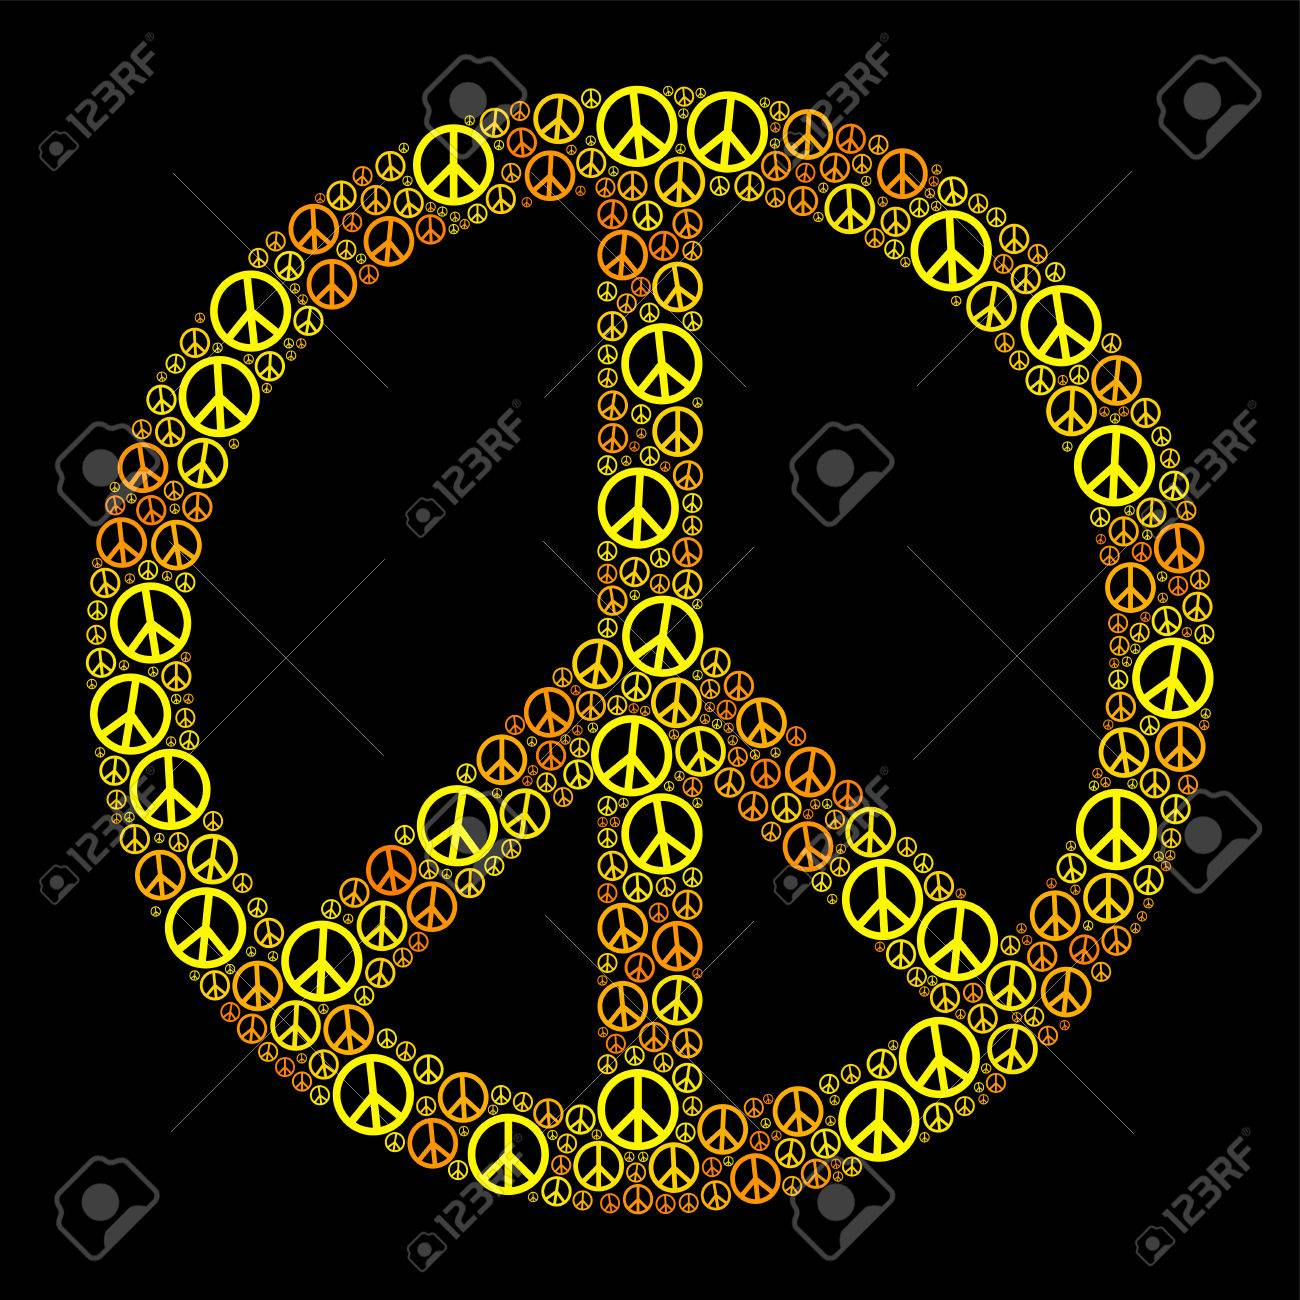 Colored peace sign formed by many small peace symbols yellow colored peace sign formed by many small peace symbols yellow orange illustration on black background biocorpaavc Images